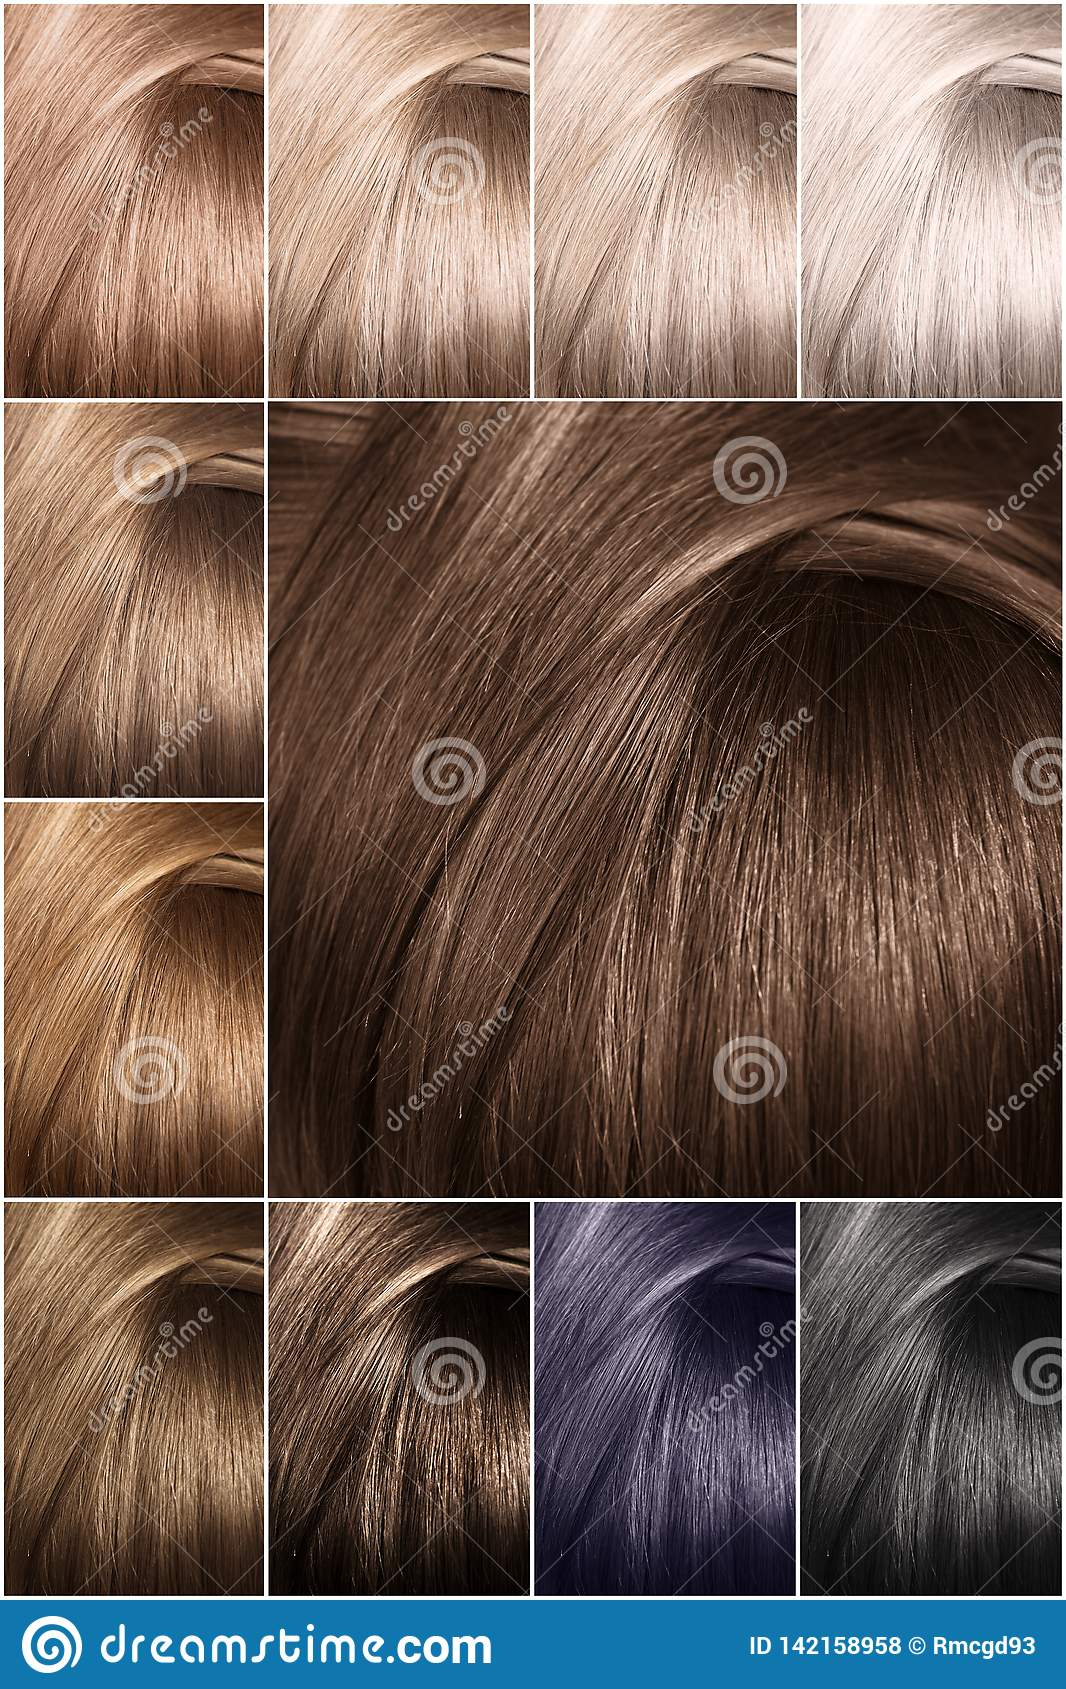 Hair Color Palette With A Wide Range Of Swatches. Dyed Hair ...